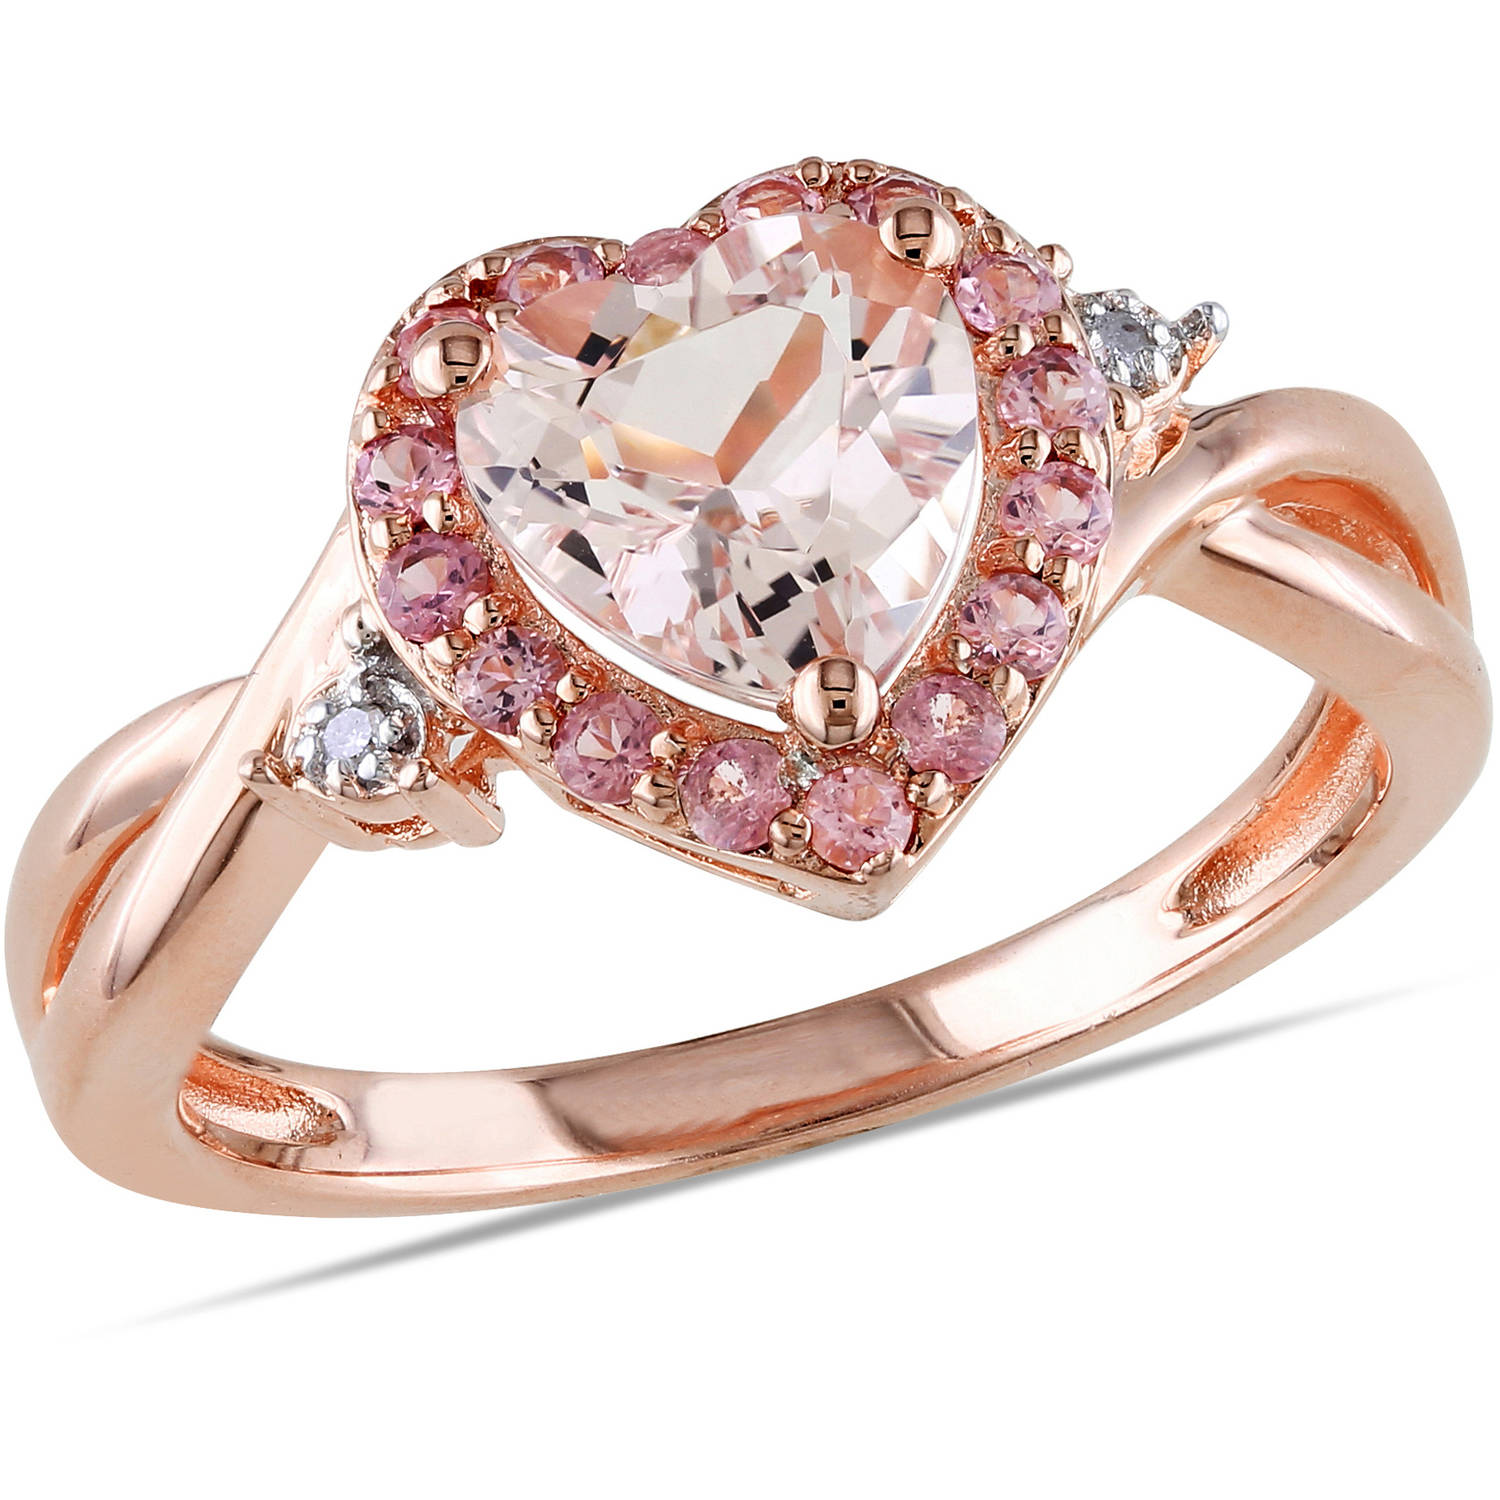 Tangelo 1-1 3 Carat T.G.W. Morganite Pink Tourmaline and Diamond-Accent Pink Rhodium-Plated Sterling Silver Heart Ring by Delmar Manufacturing LLC